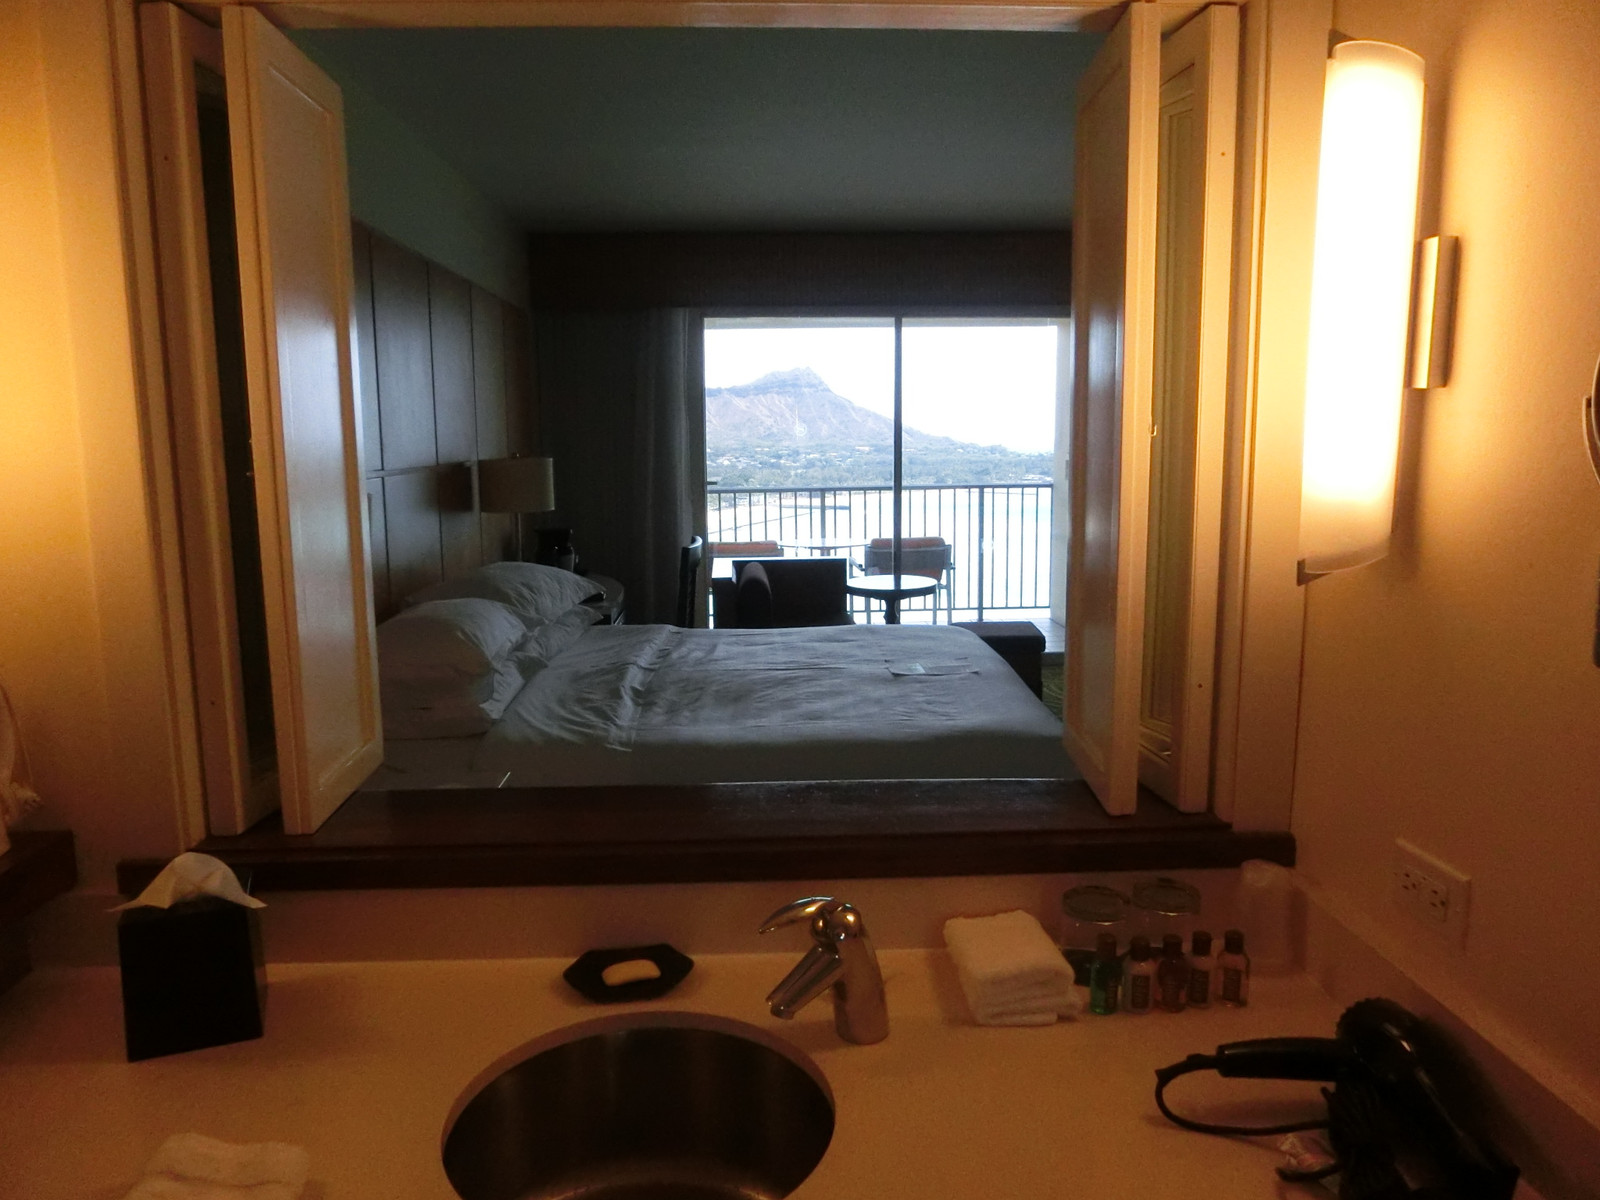 Diamond_head_viewed_from_bathroom_s